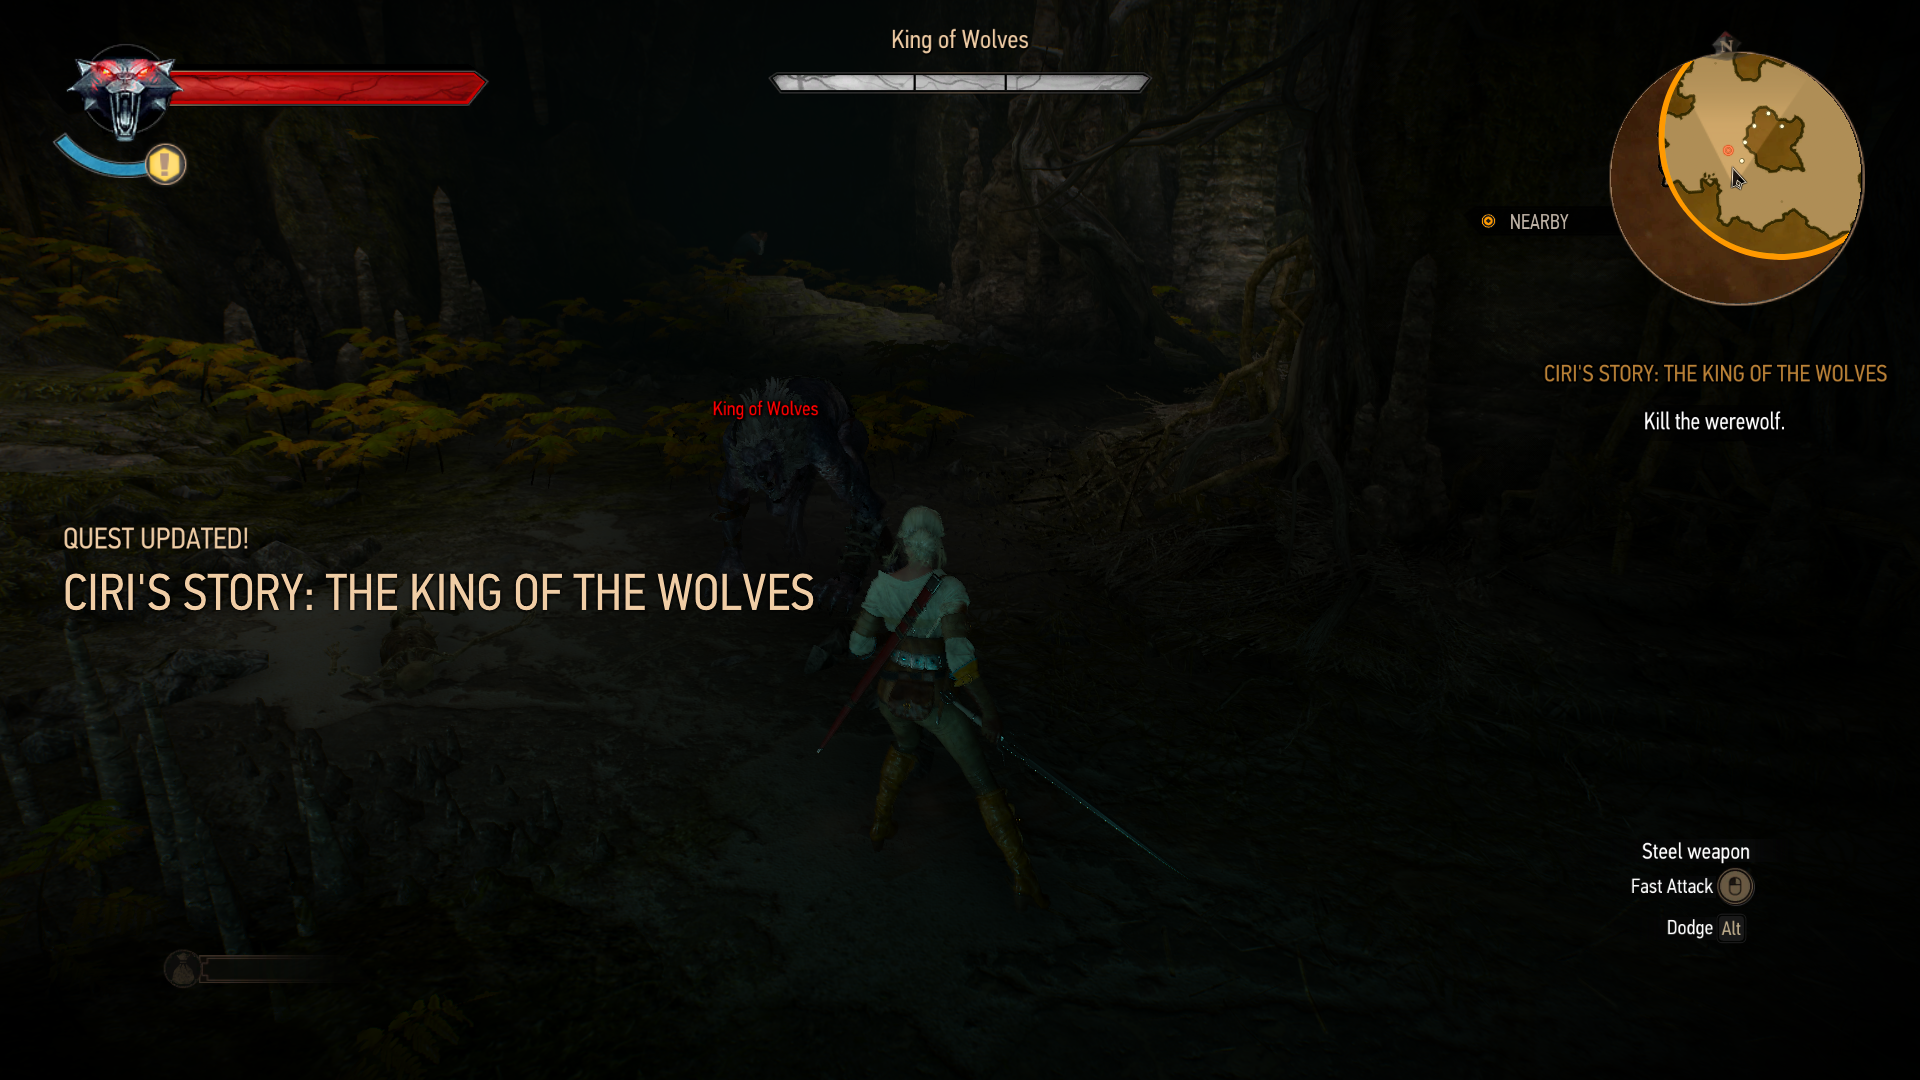 Ciri vs King of Wolves